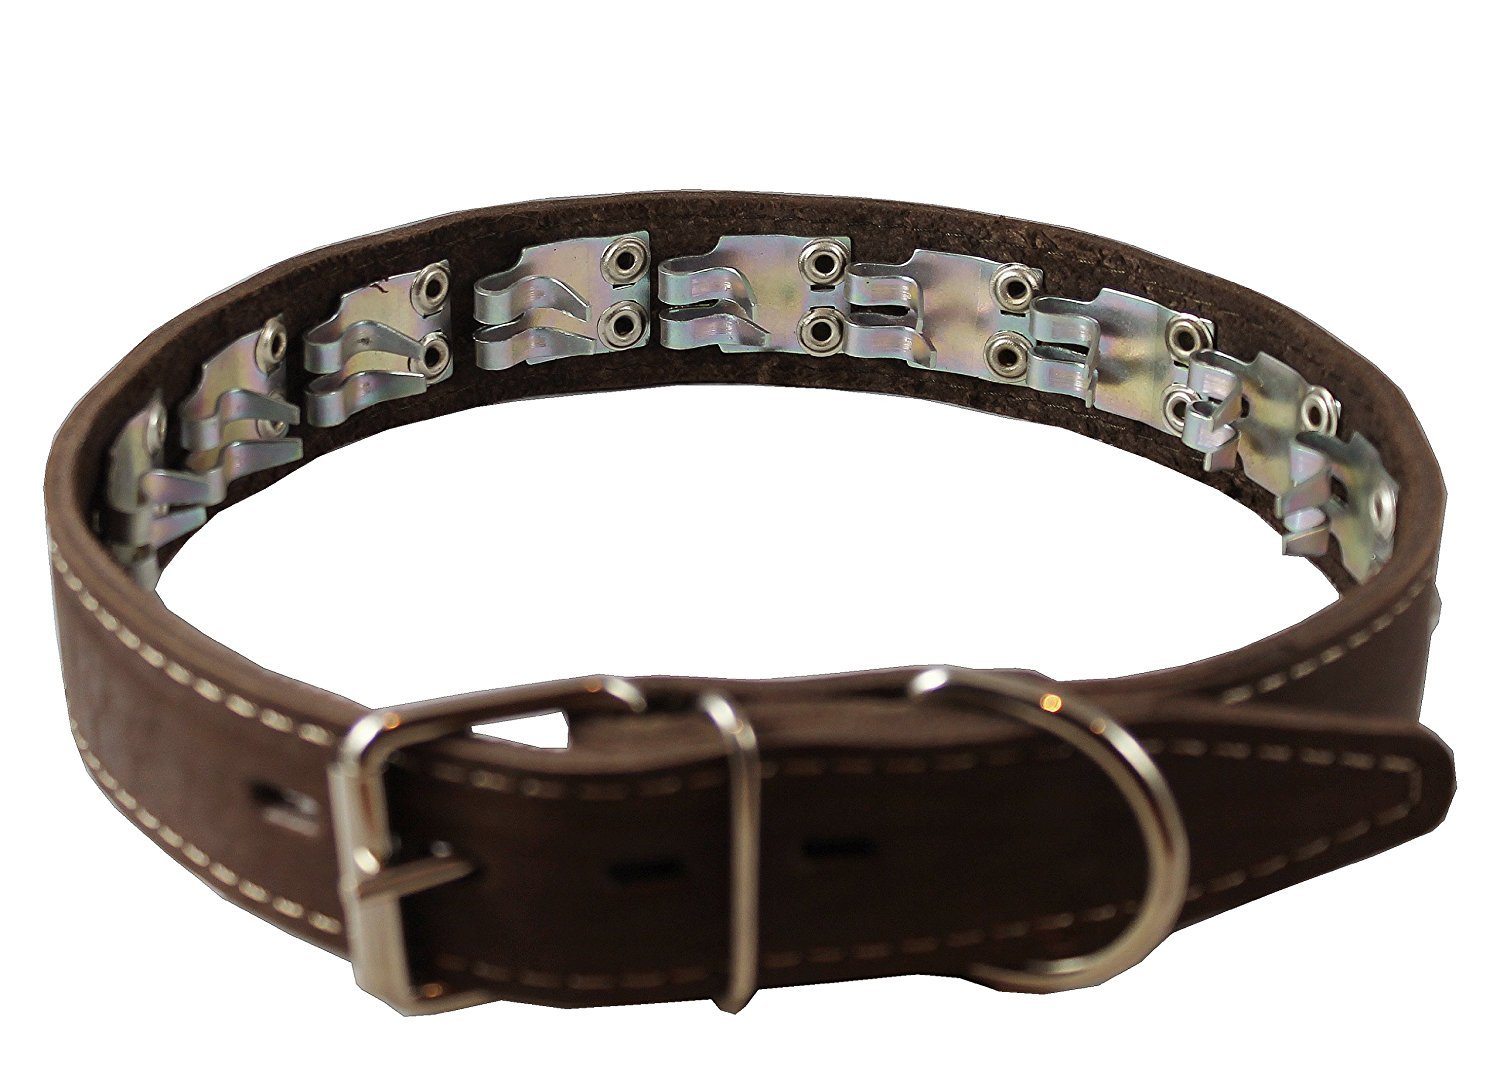 Training Pinch and Genuine Leather Studded Dog Collar Fits 13-17 Neck Brown 21.5x1.5 Wide